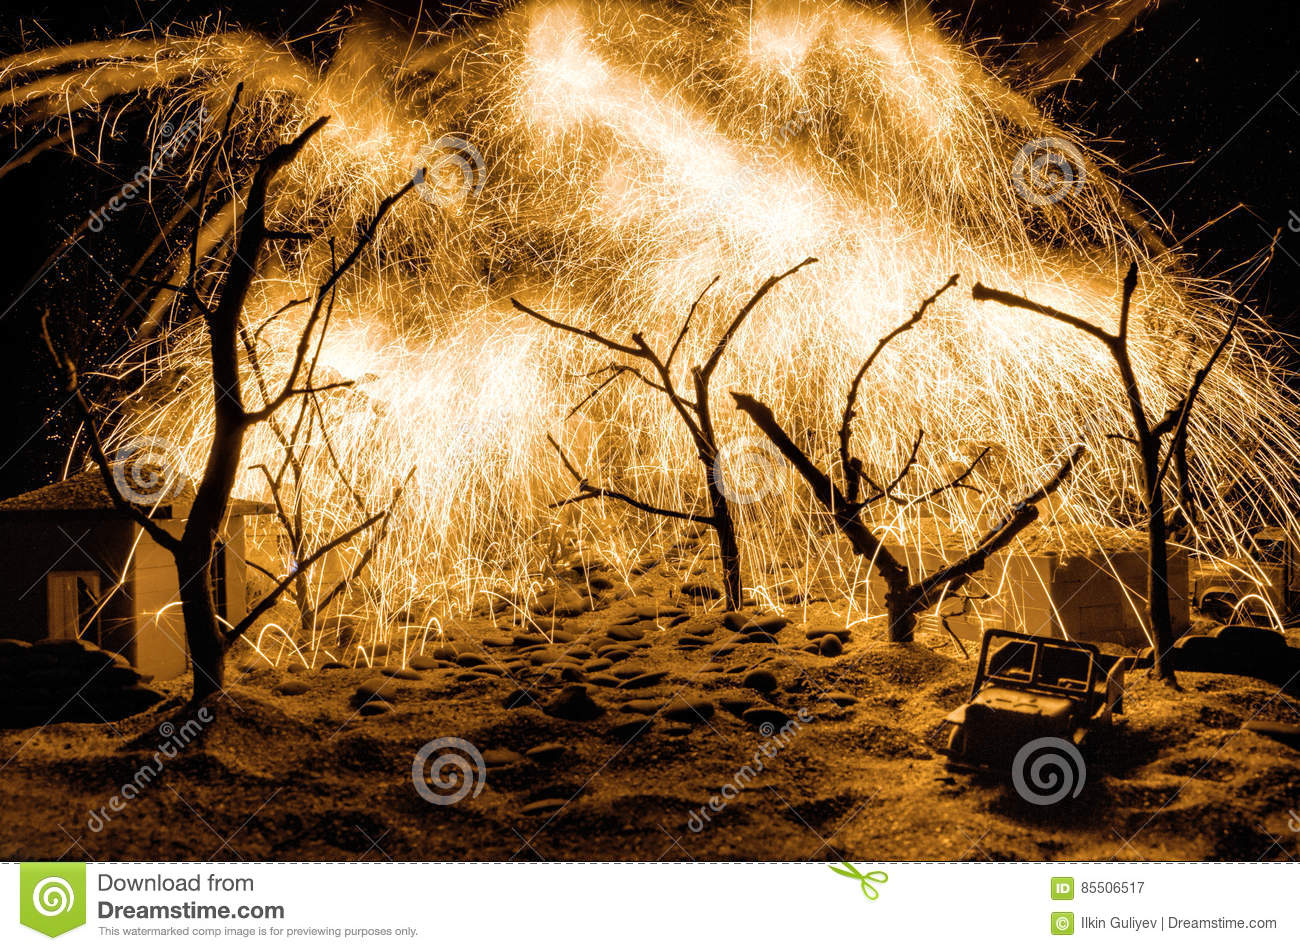 Forest Fire, Wildfire burning tree in red and orange color at night. On Table decoration with fireworks tree branches and sand